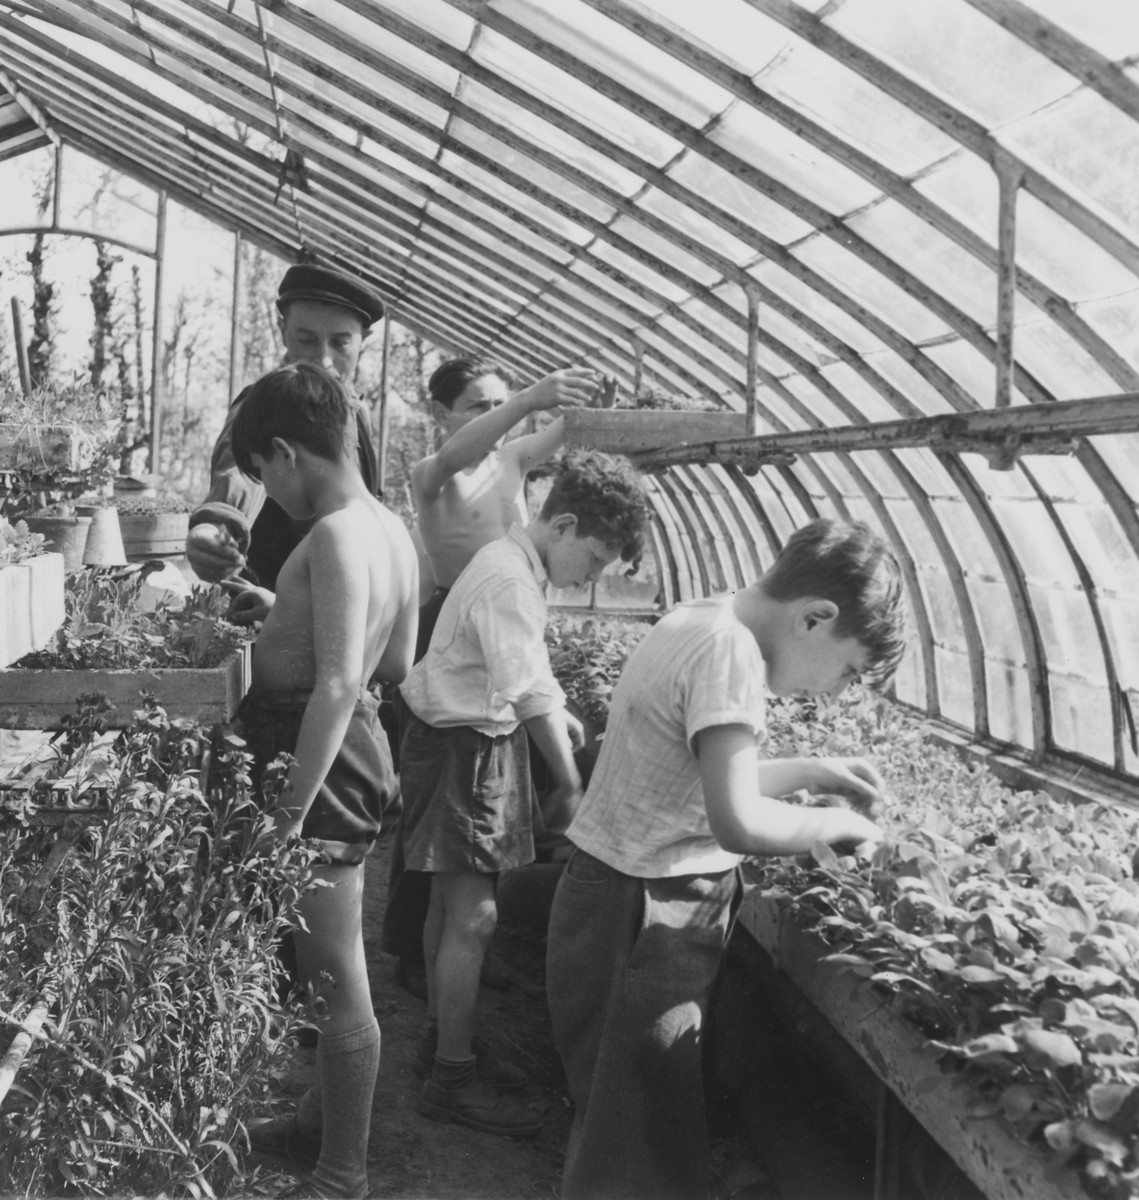 Children work in the greenhouses of La Forge, an OSE children's home in Fontenay-aux-Roses.  Pictured with his arms extended is Richard Nussbaum.